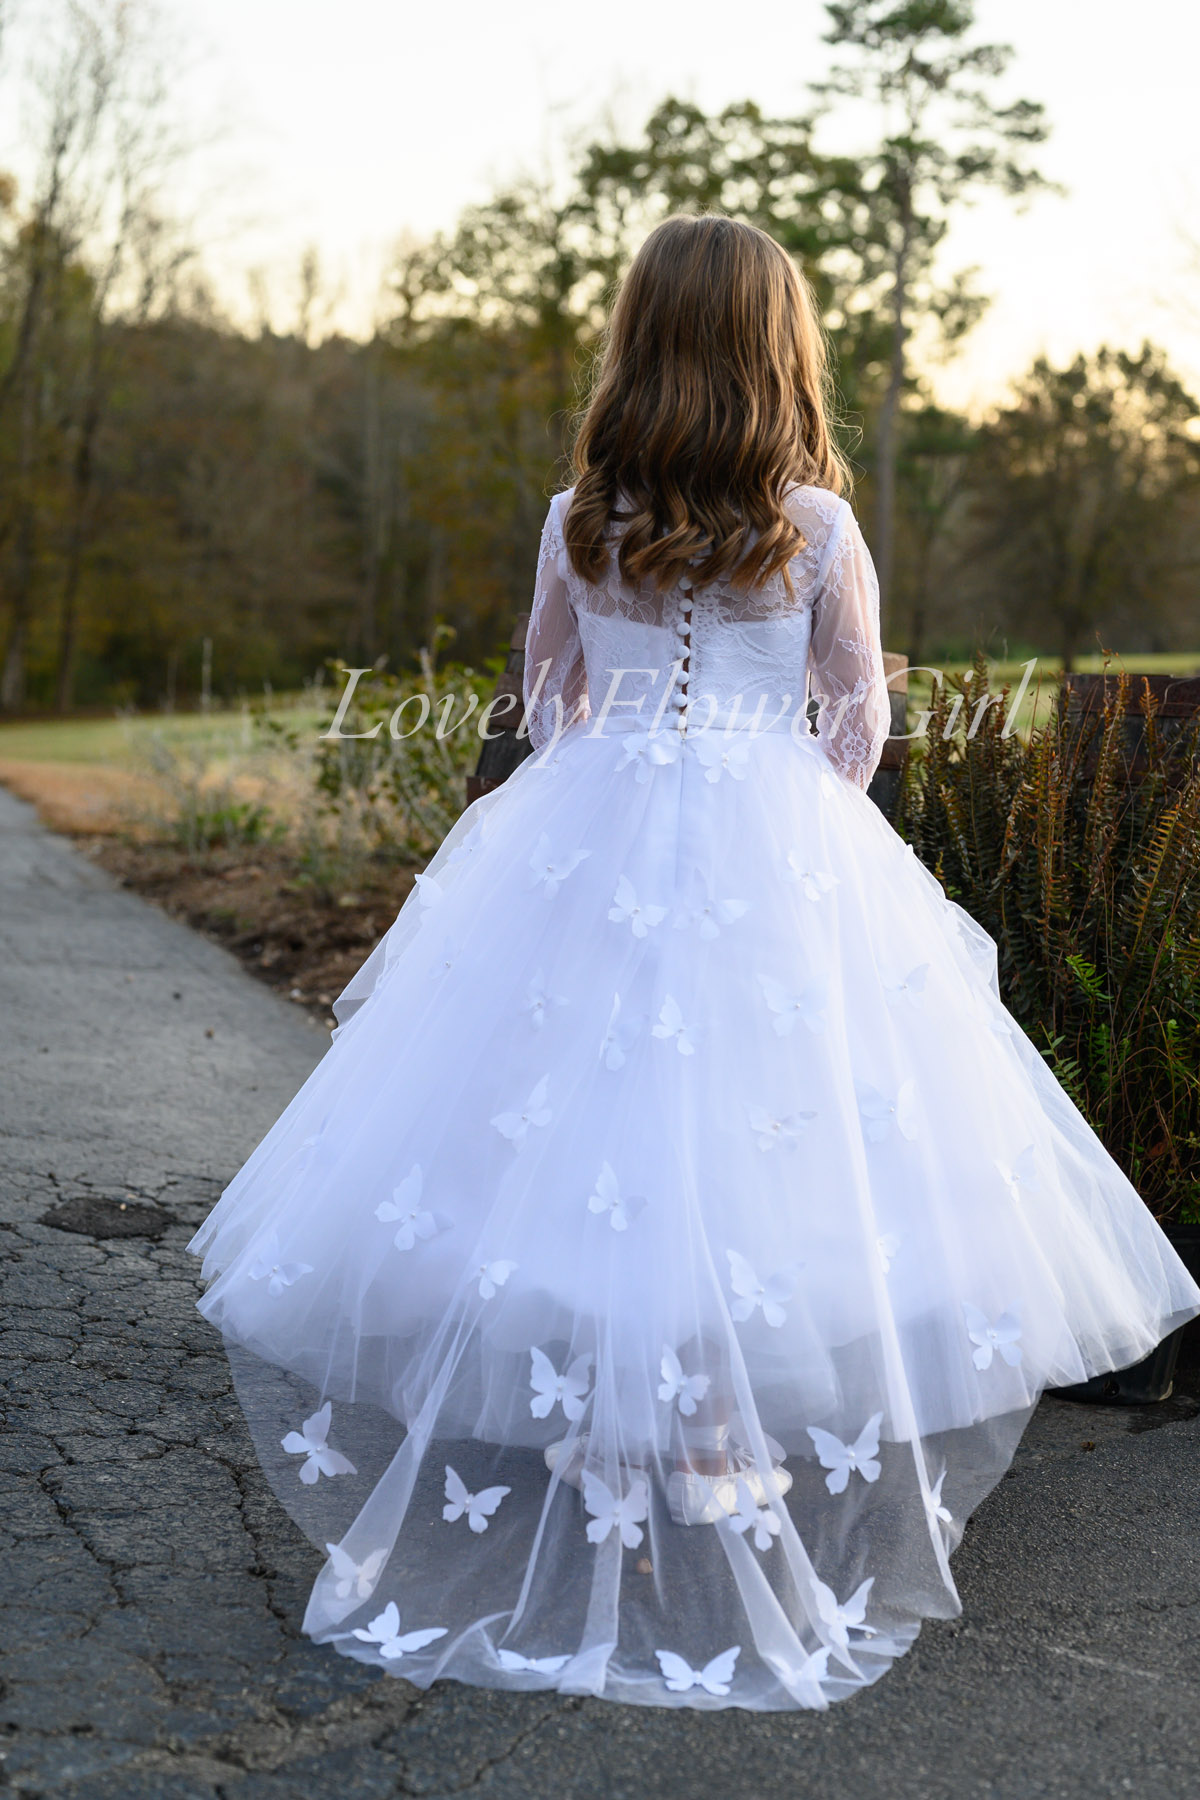 Long Sleeve Floor-length Flower Girl Dress Pink-Butterfly